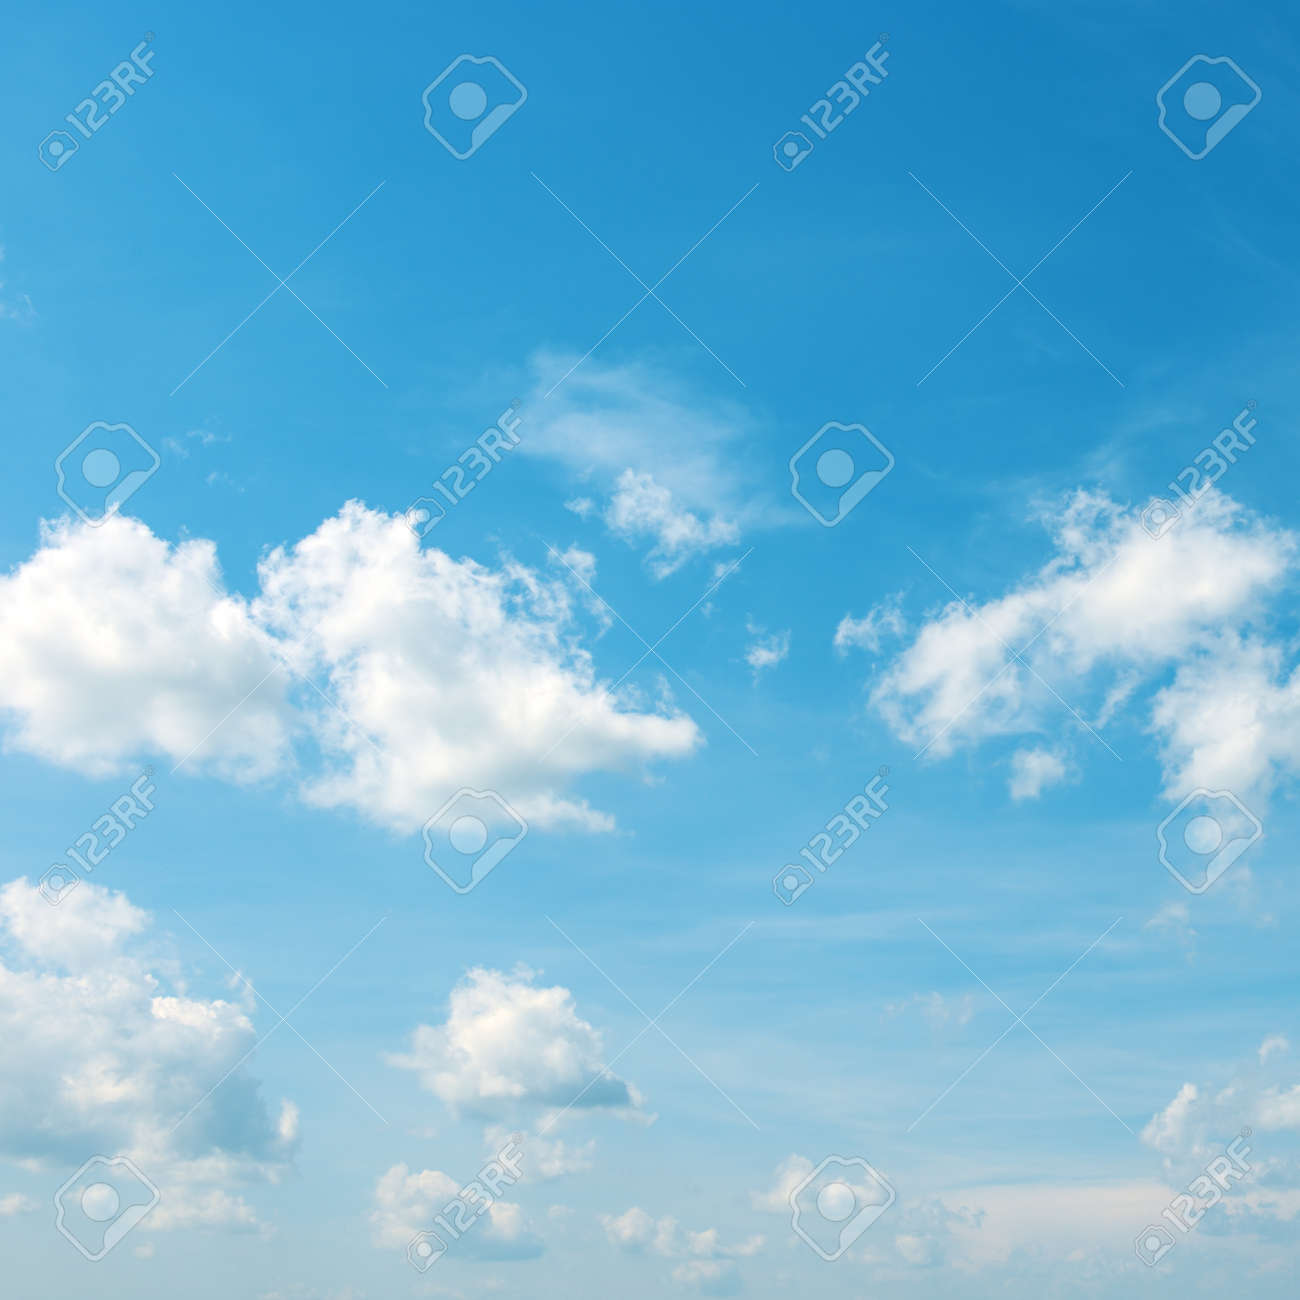 Heavenly landscape - white clouds in bright blue sky. - 123610783